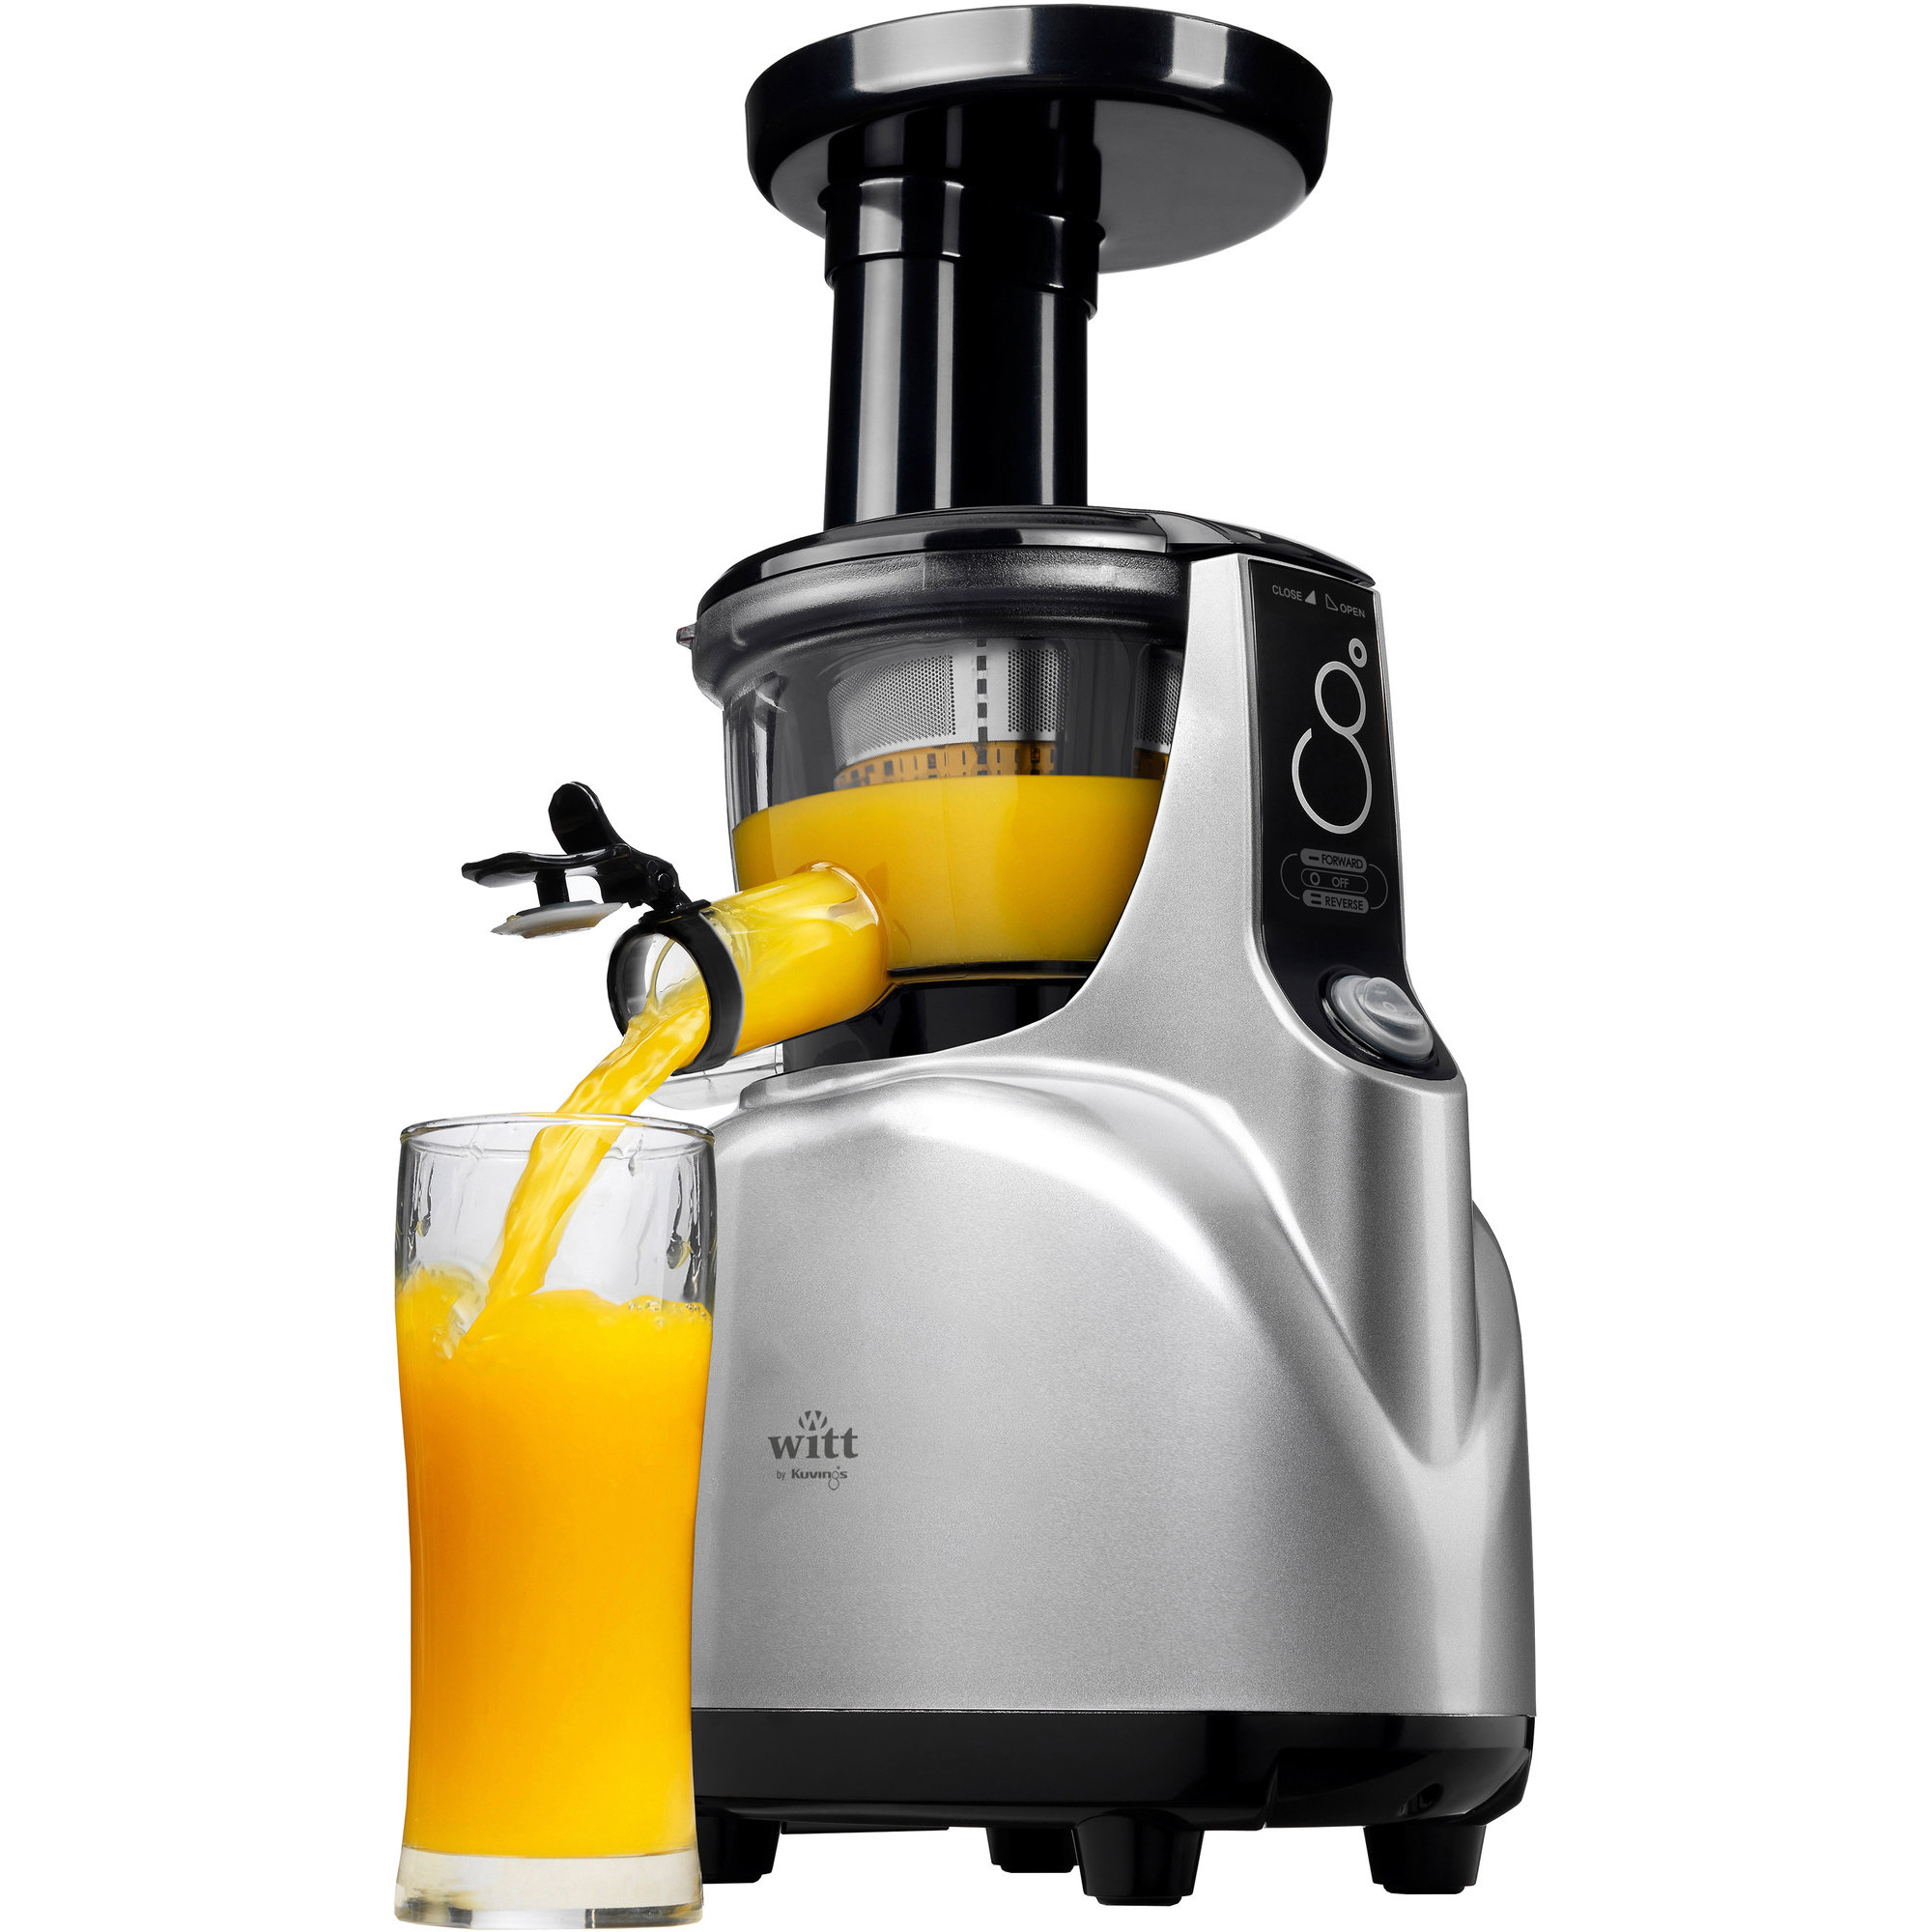 Kuvings Slow Juicer Tilbud : Kjop B5100S Silent Slow Juicer solv fra Witt by Kuvings